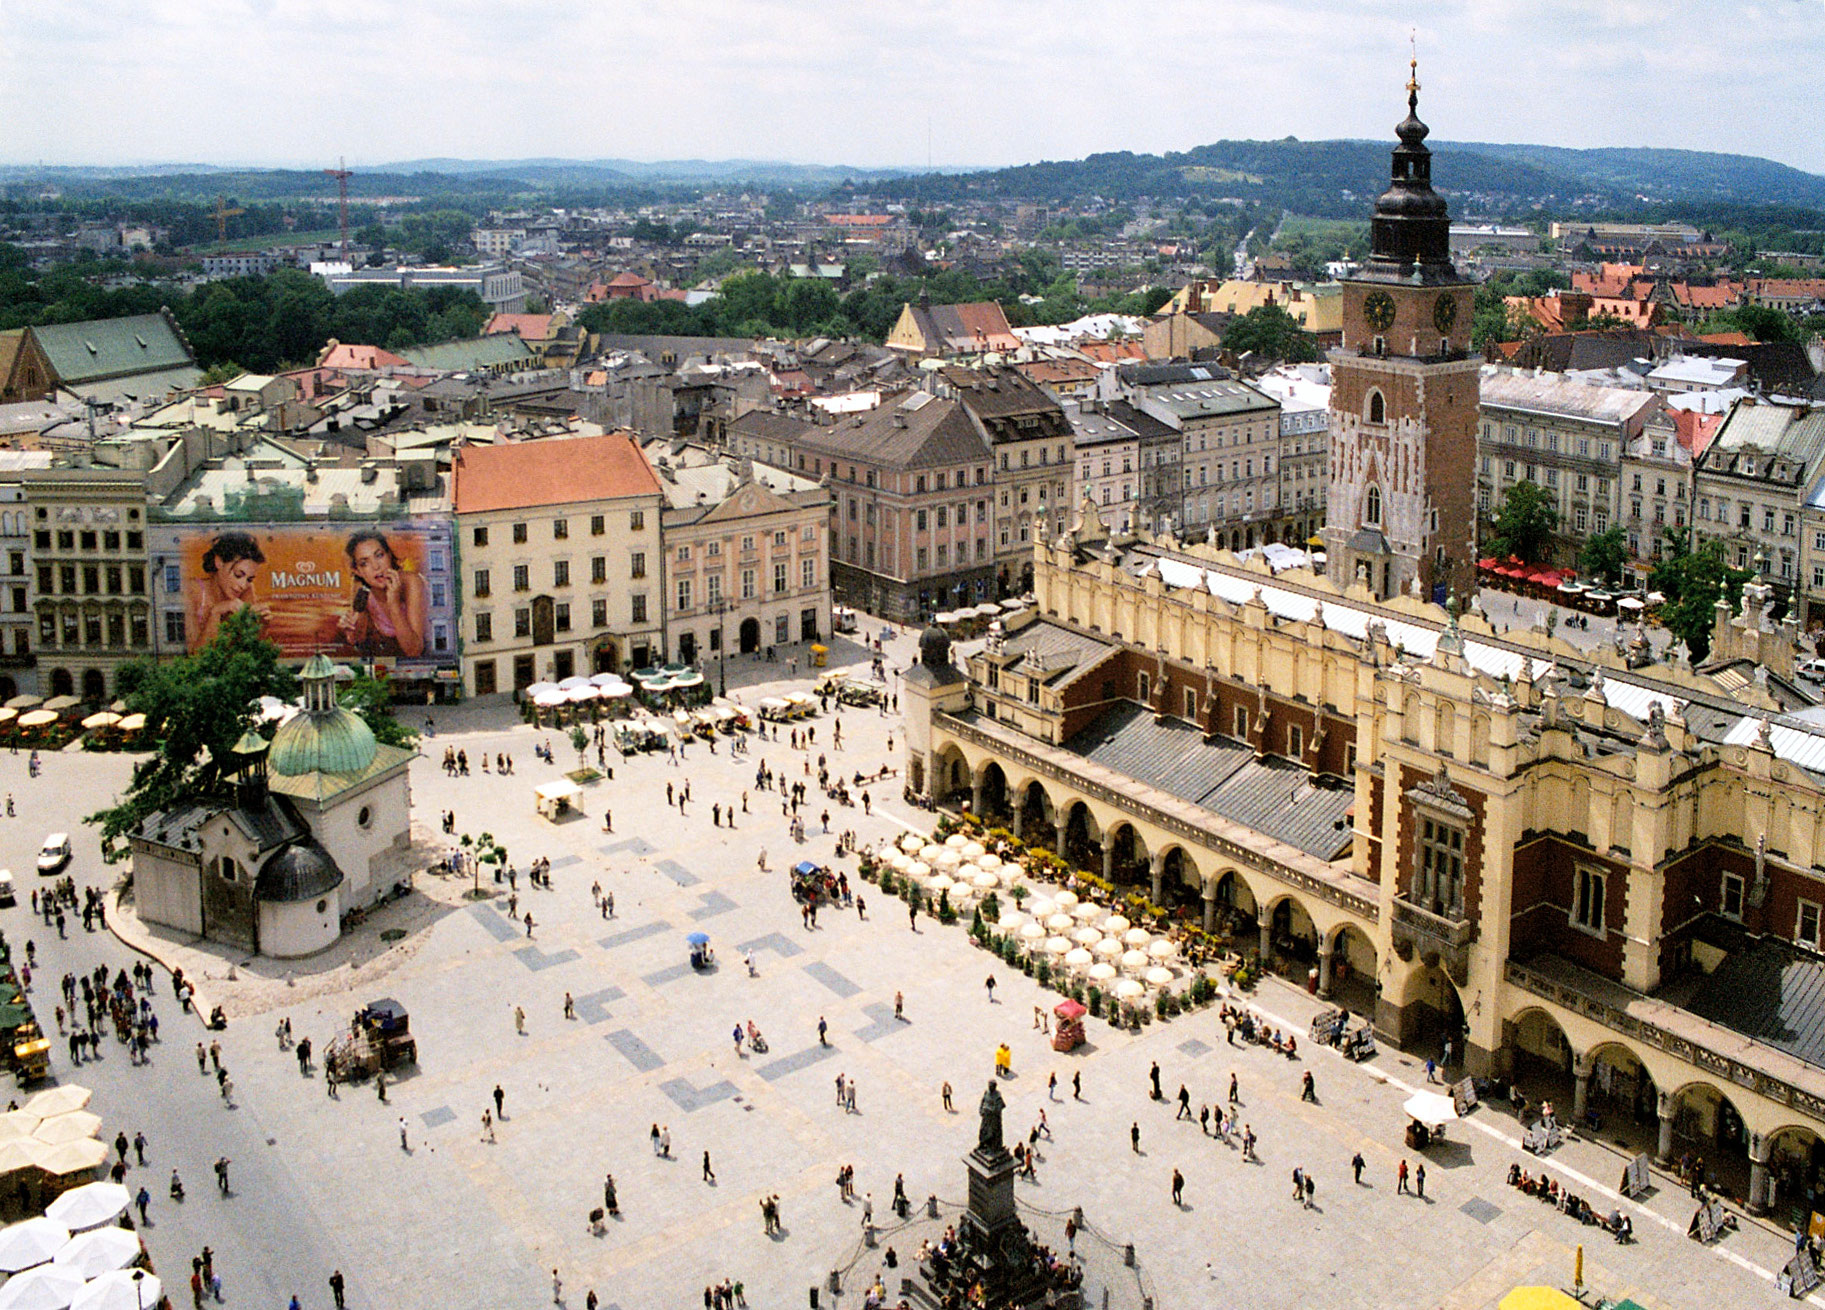 https://es.wikipedia.org/wiki/Plaza_del_Mercado_de_Cracovia#/media/File:Krakow_rynek_01.jpg